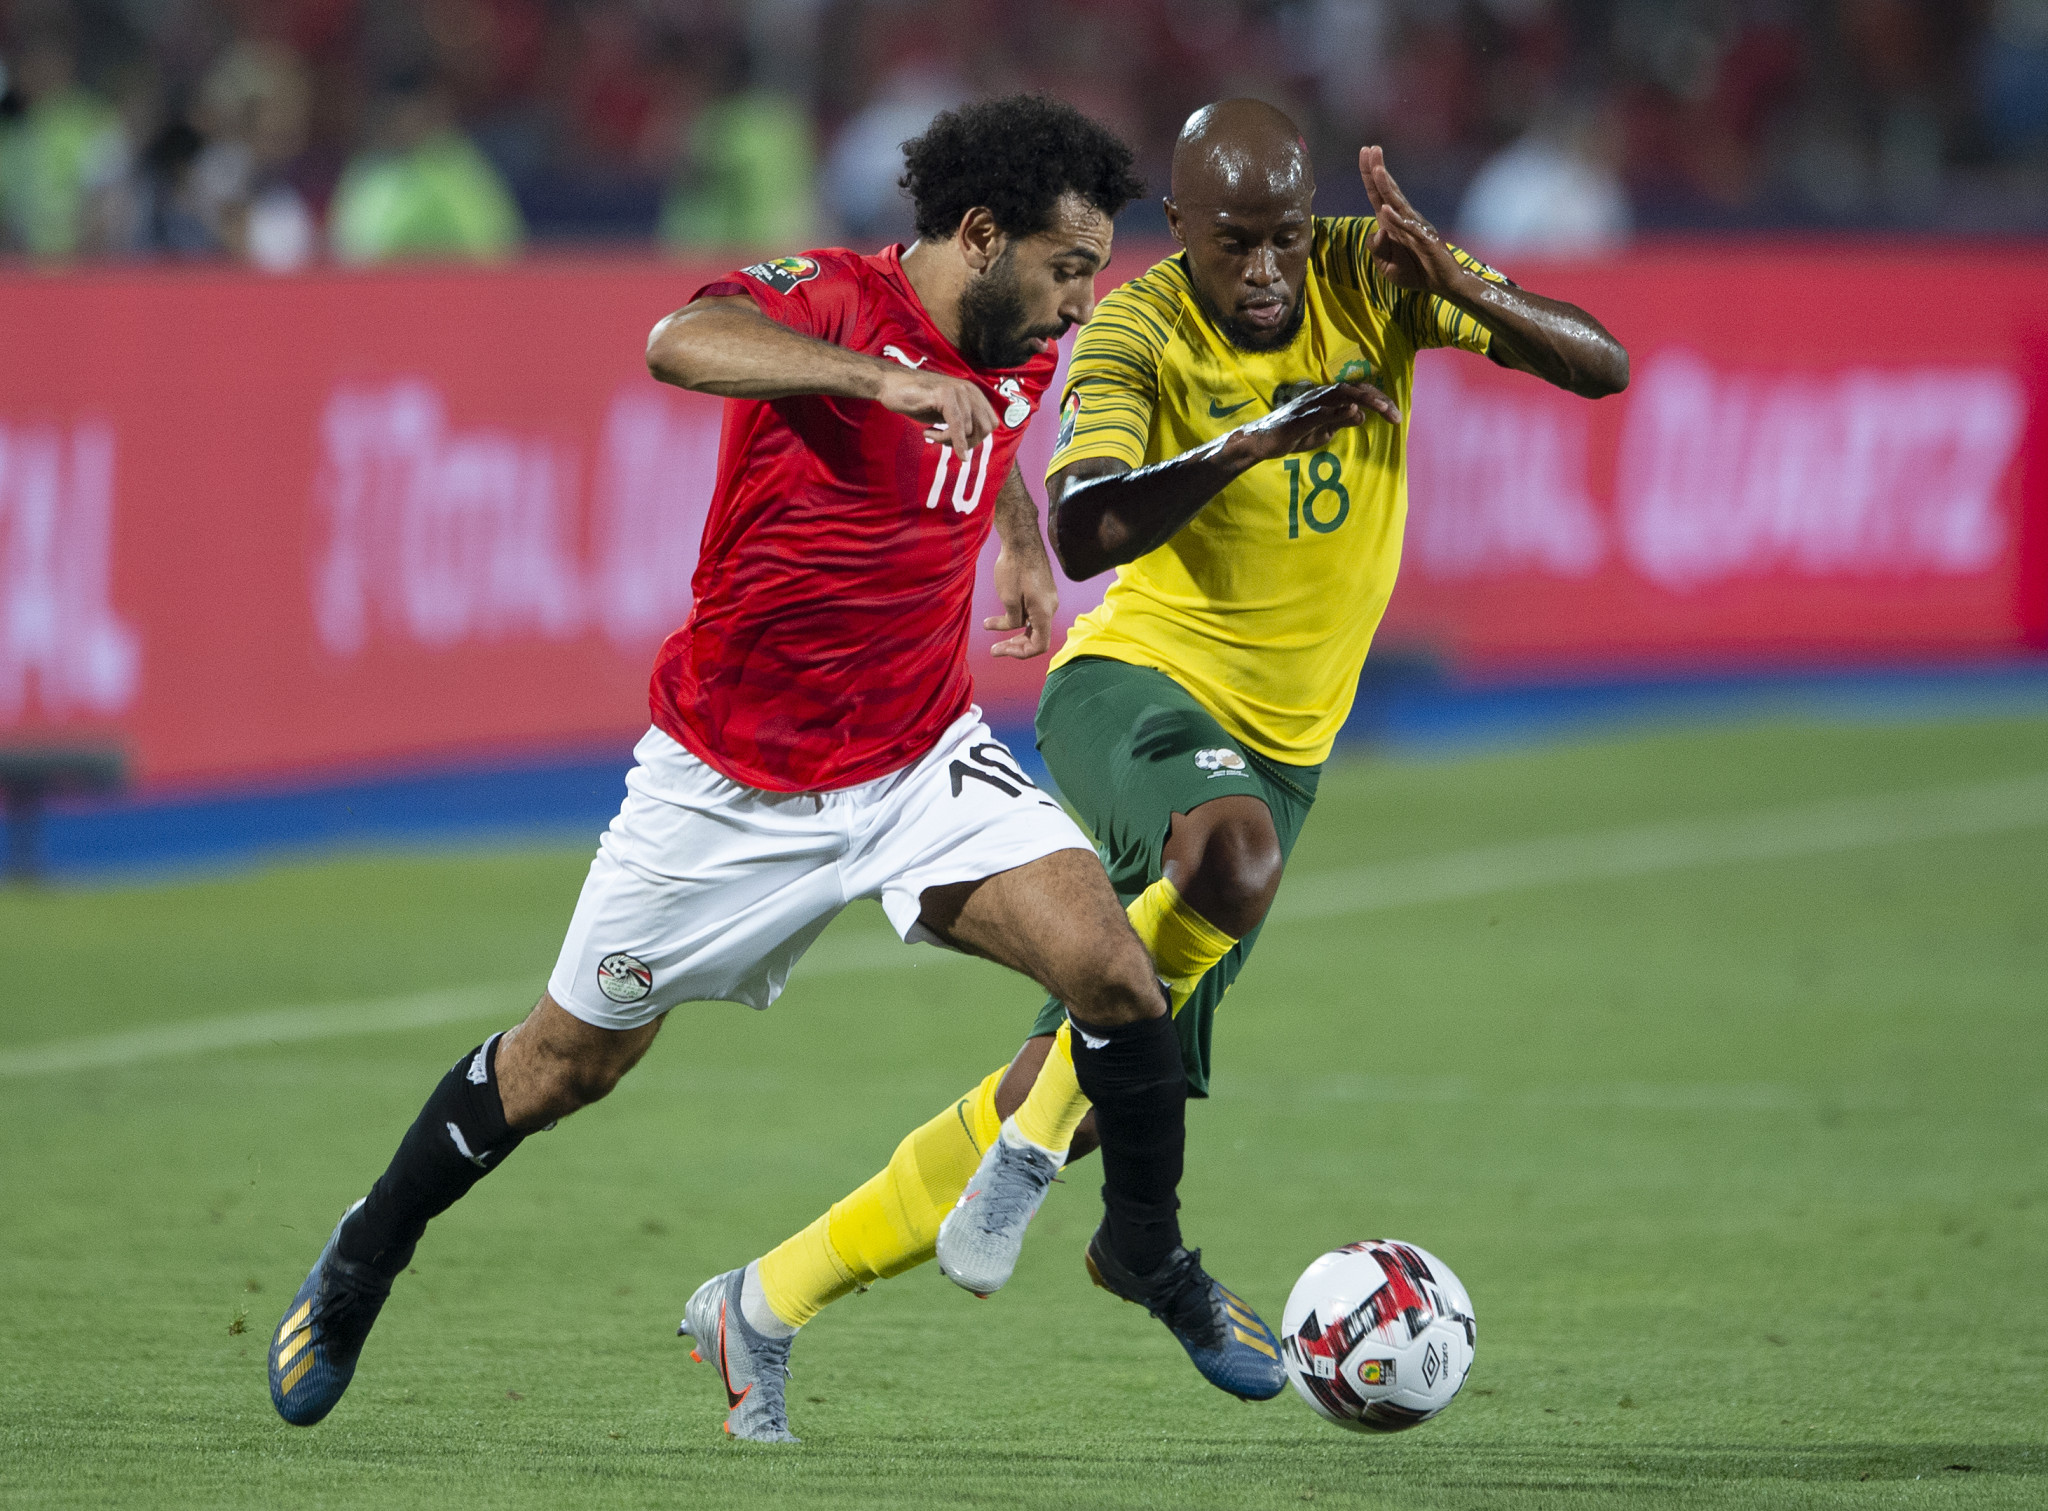 Hosts Egypt will be hoping to do better at the Under-23 Africa Cup of Nations than the senior national team, which lost to South Africa in the last 16 of the Africa Cup of Nations ©Getty Images